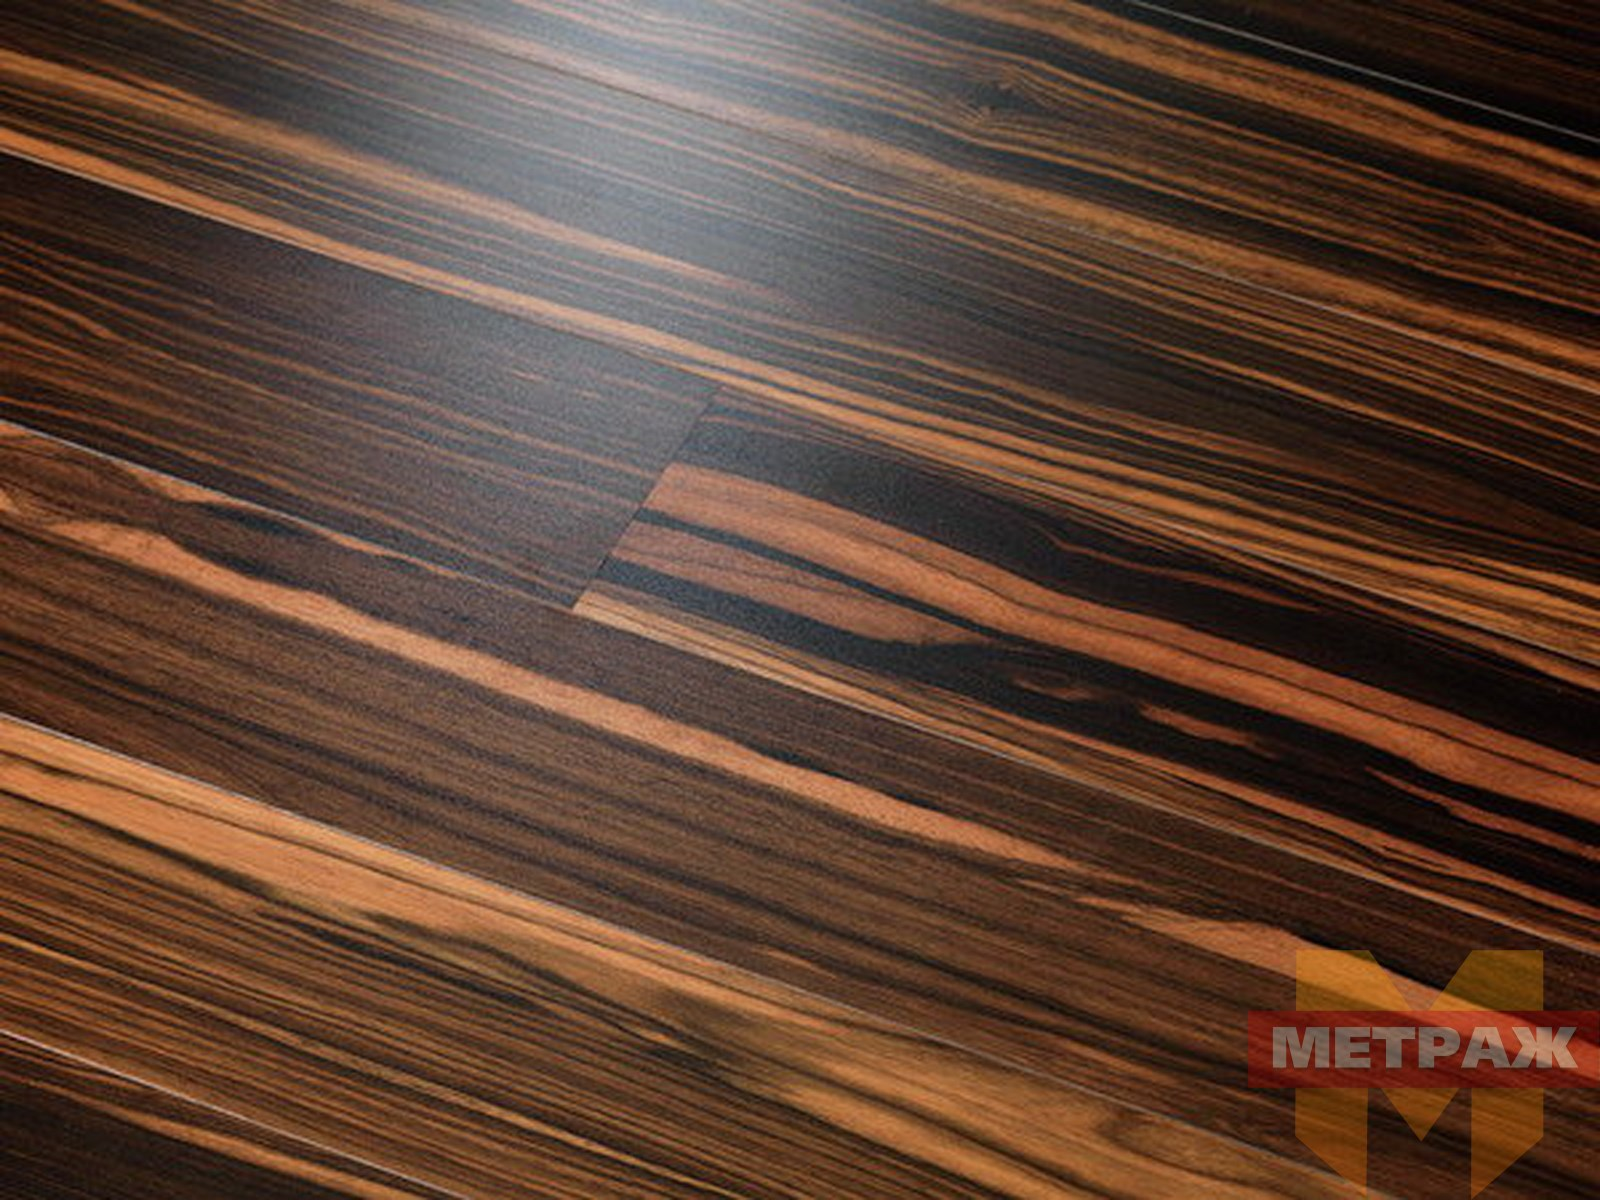 Stock images similar to id 360139439 parquet pattern seamless wooden parquet blocks abstract checkered pattern 3d